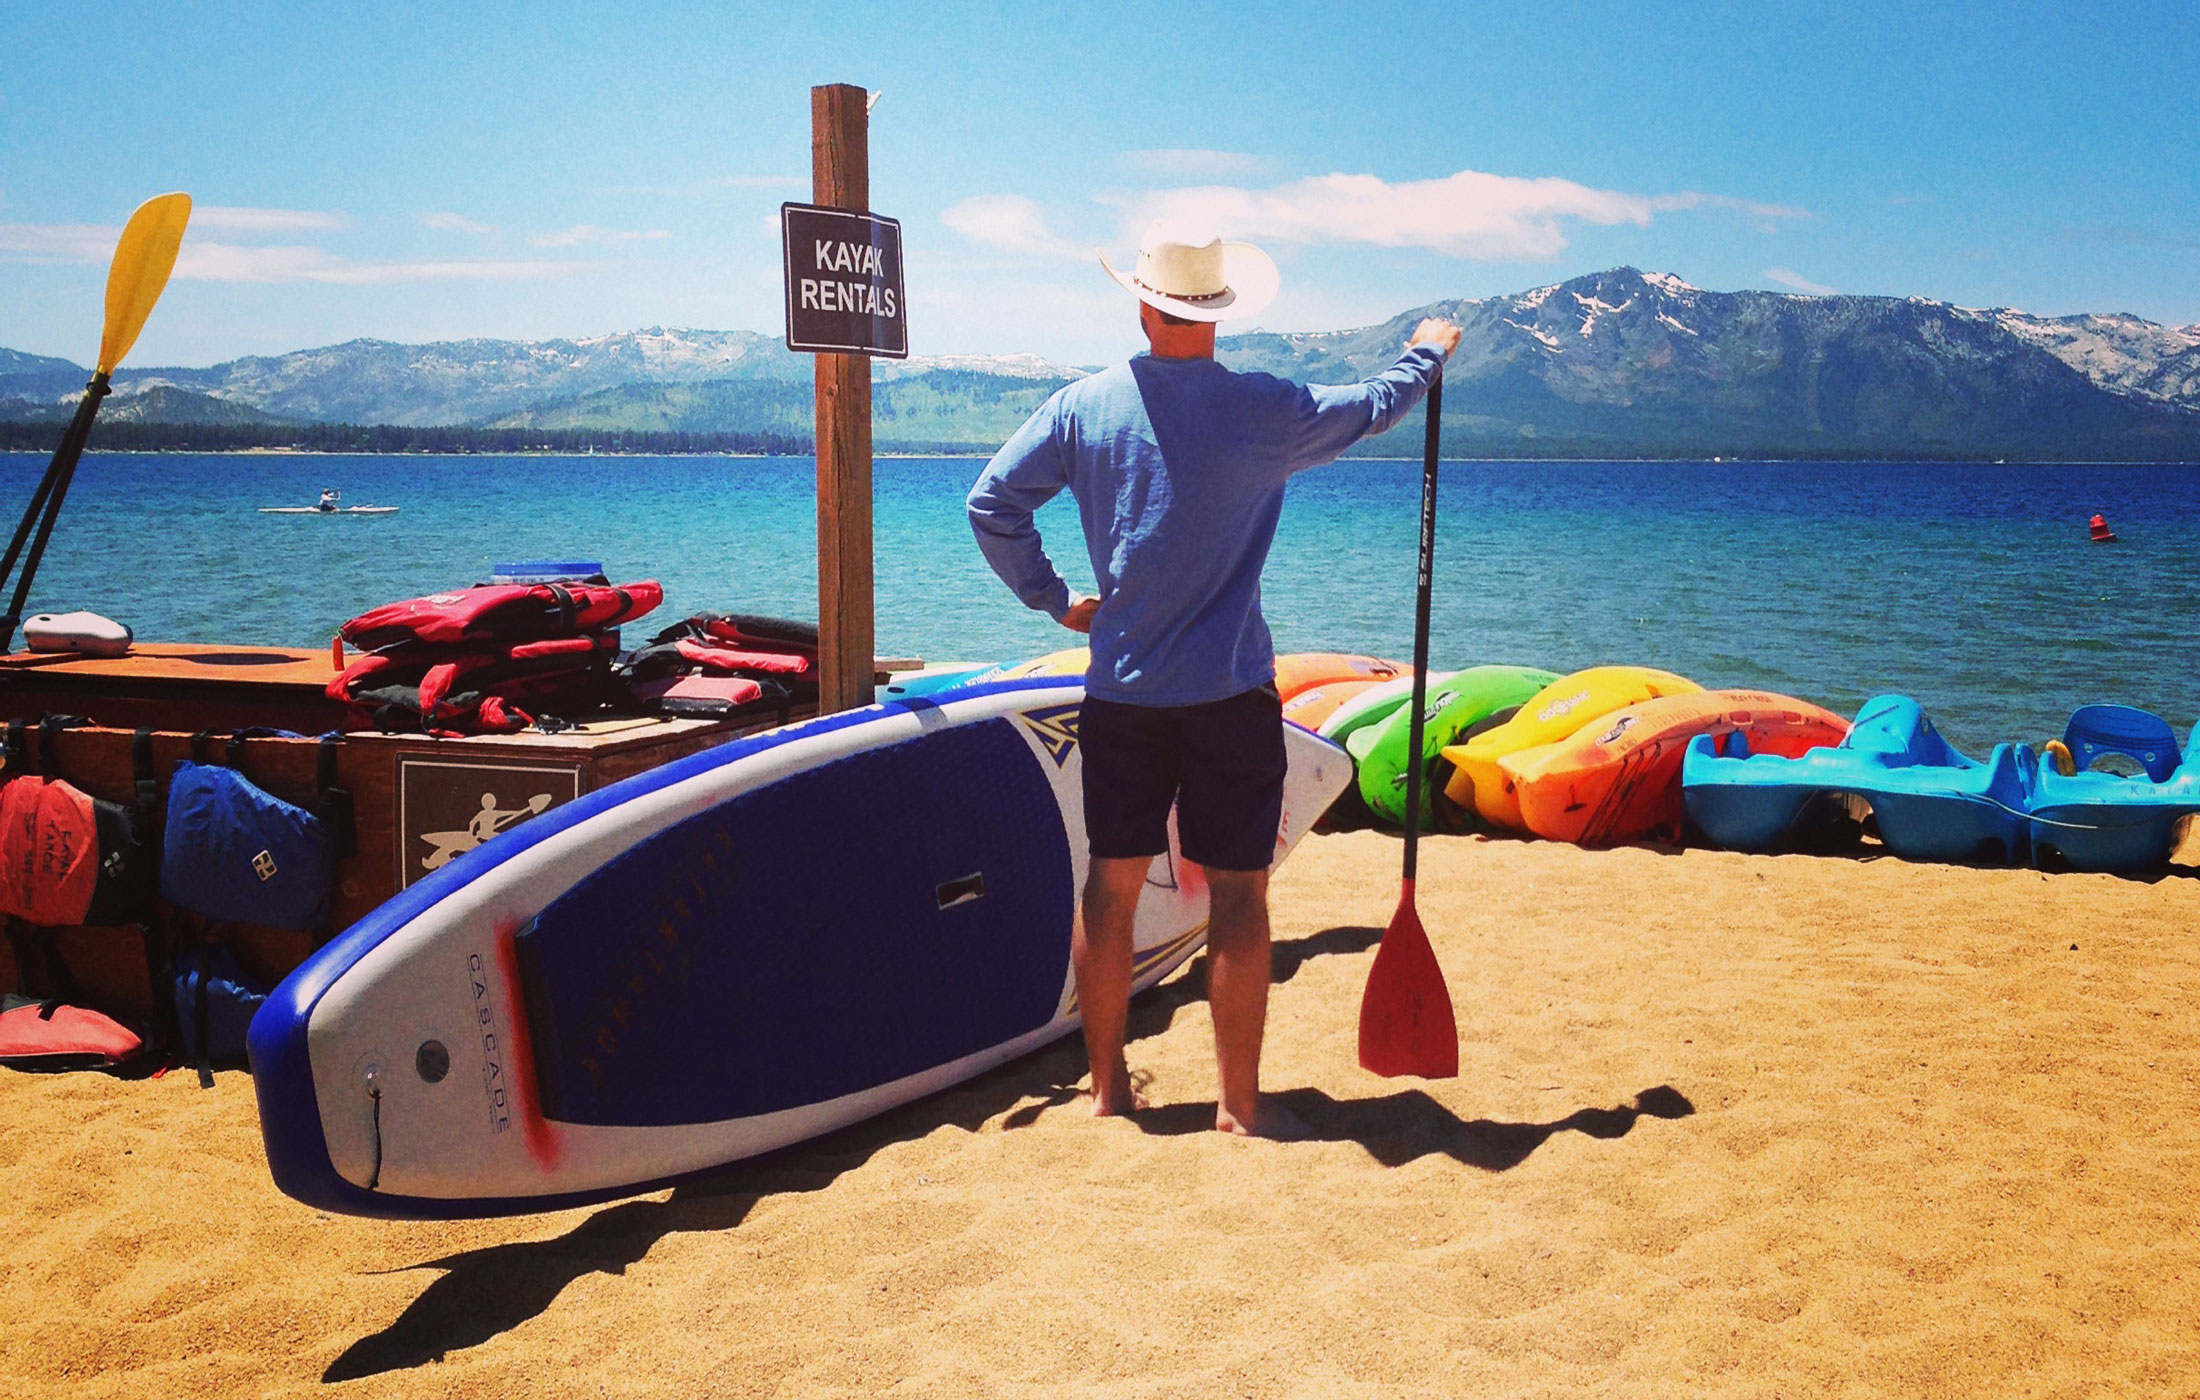 Kayak Rental fleet at Nevada Beach